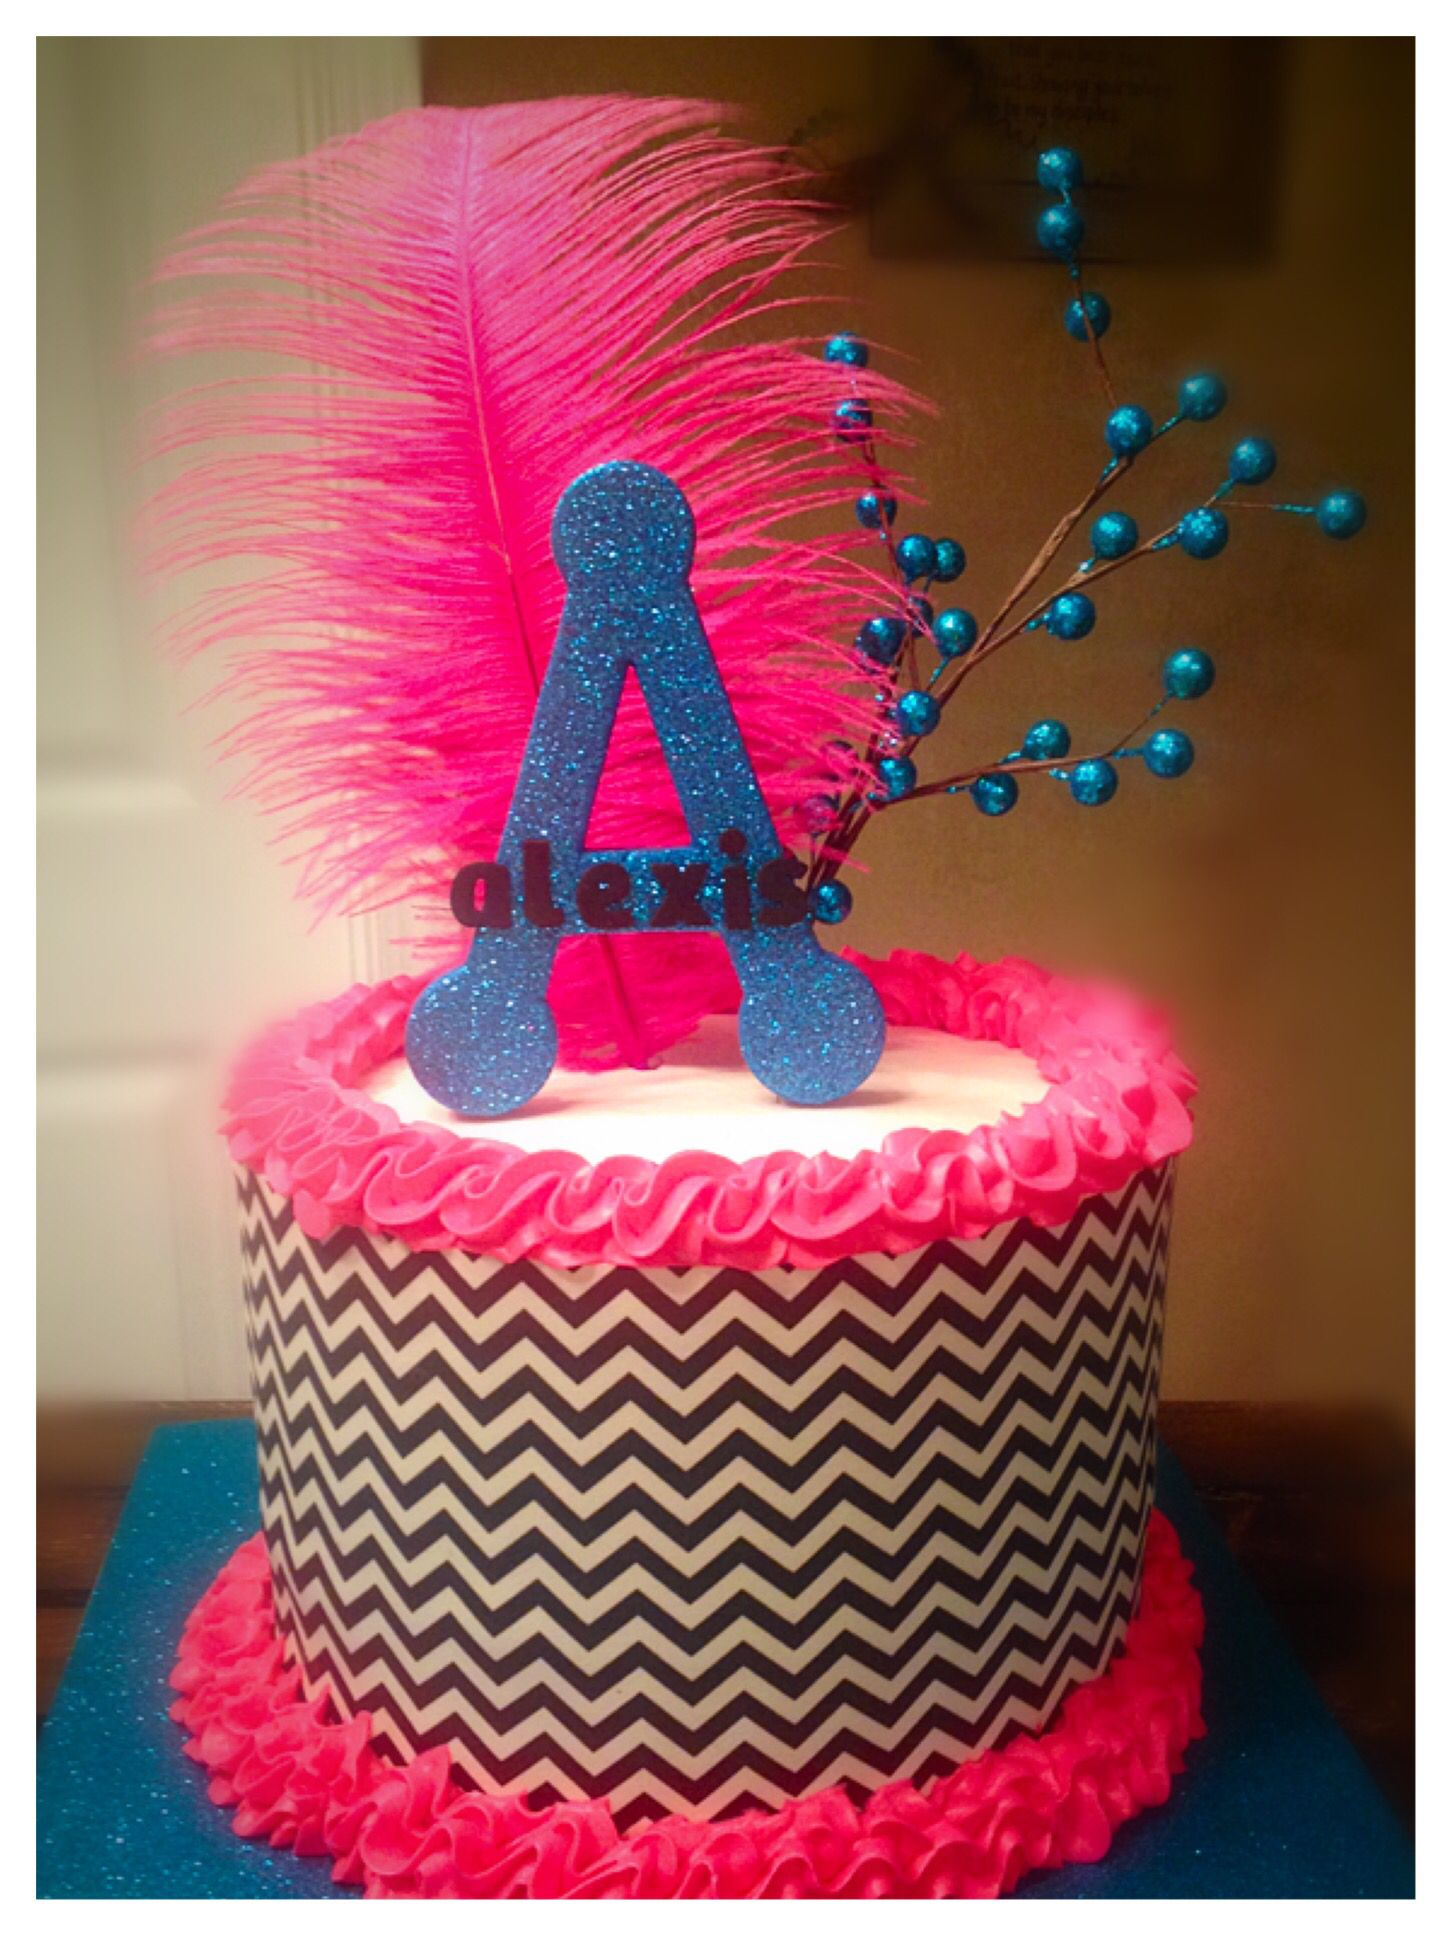 Black white chevron cake with pink and blue accents edible sugar